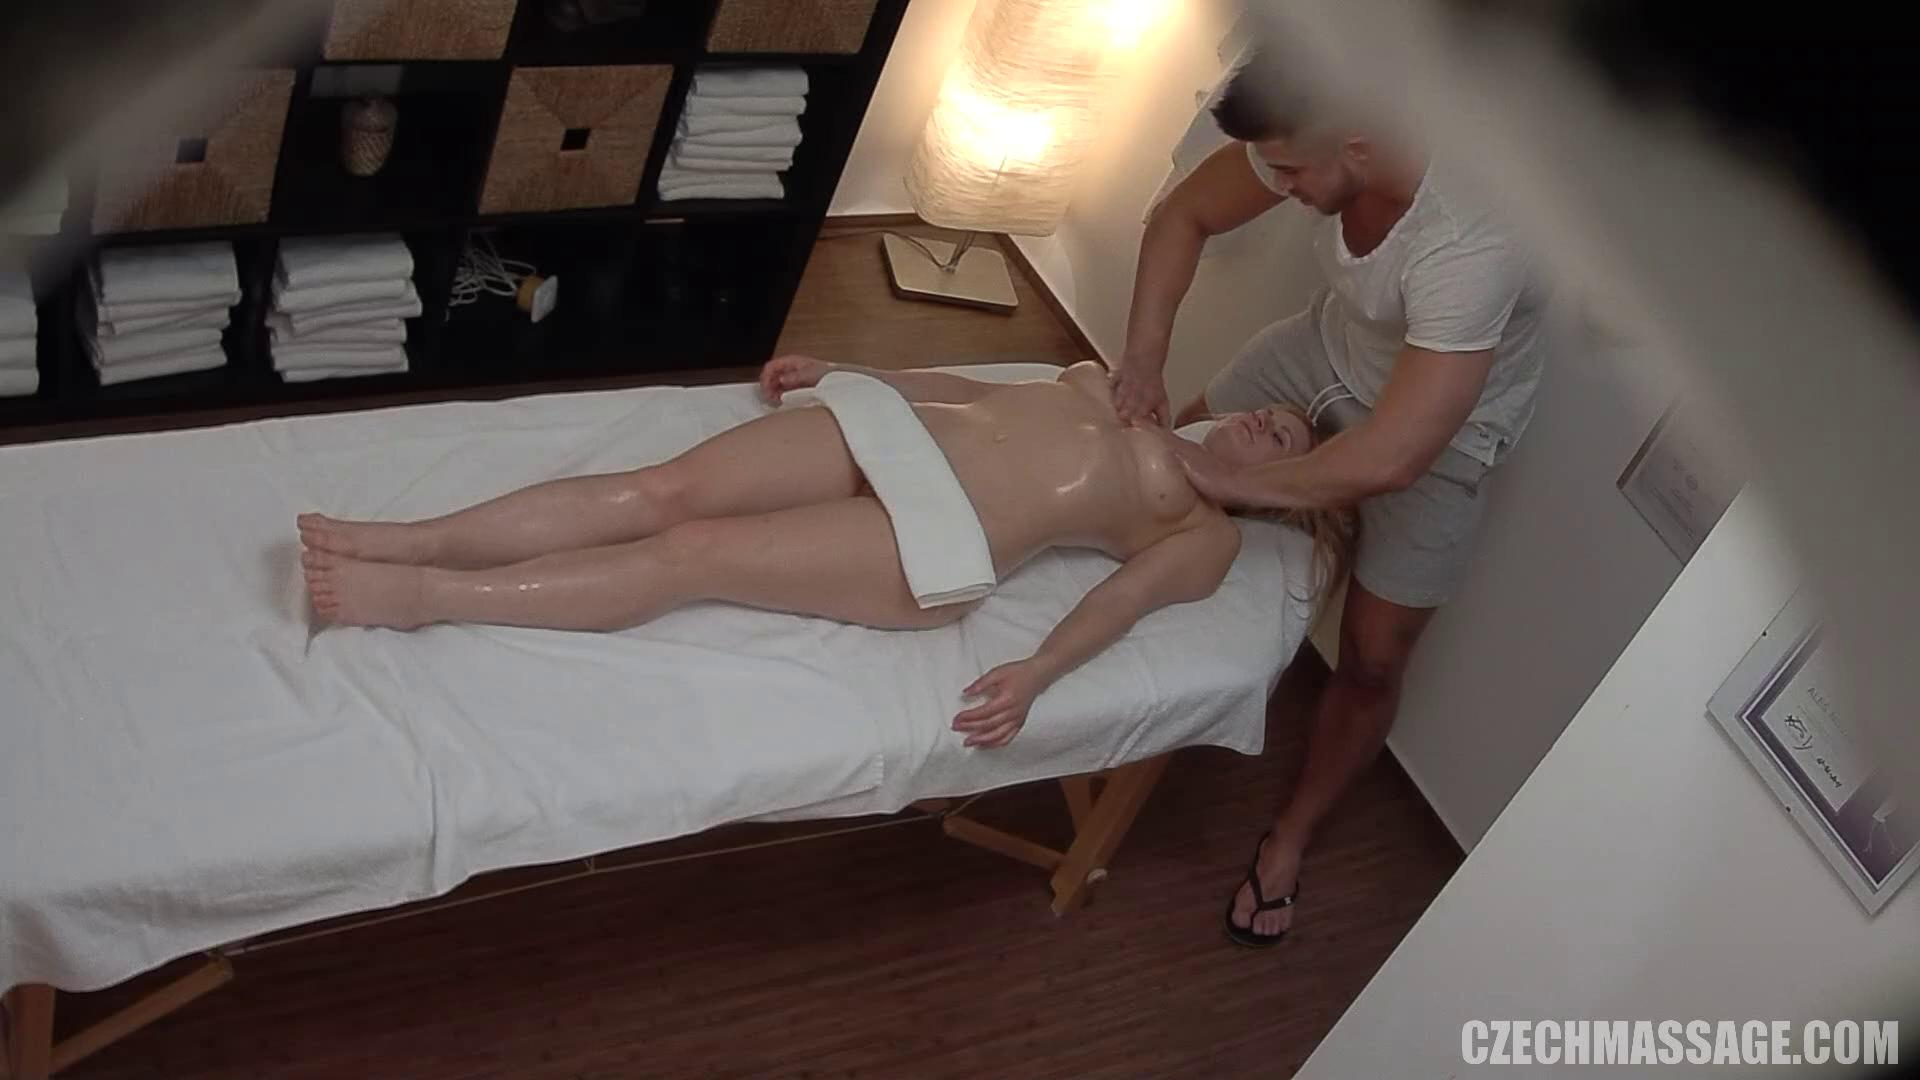 CzechMassage – Massage 371